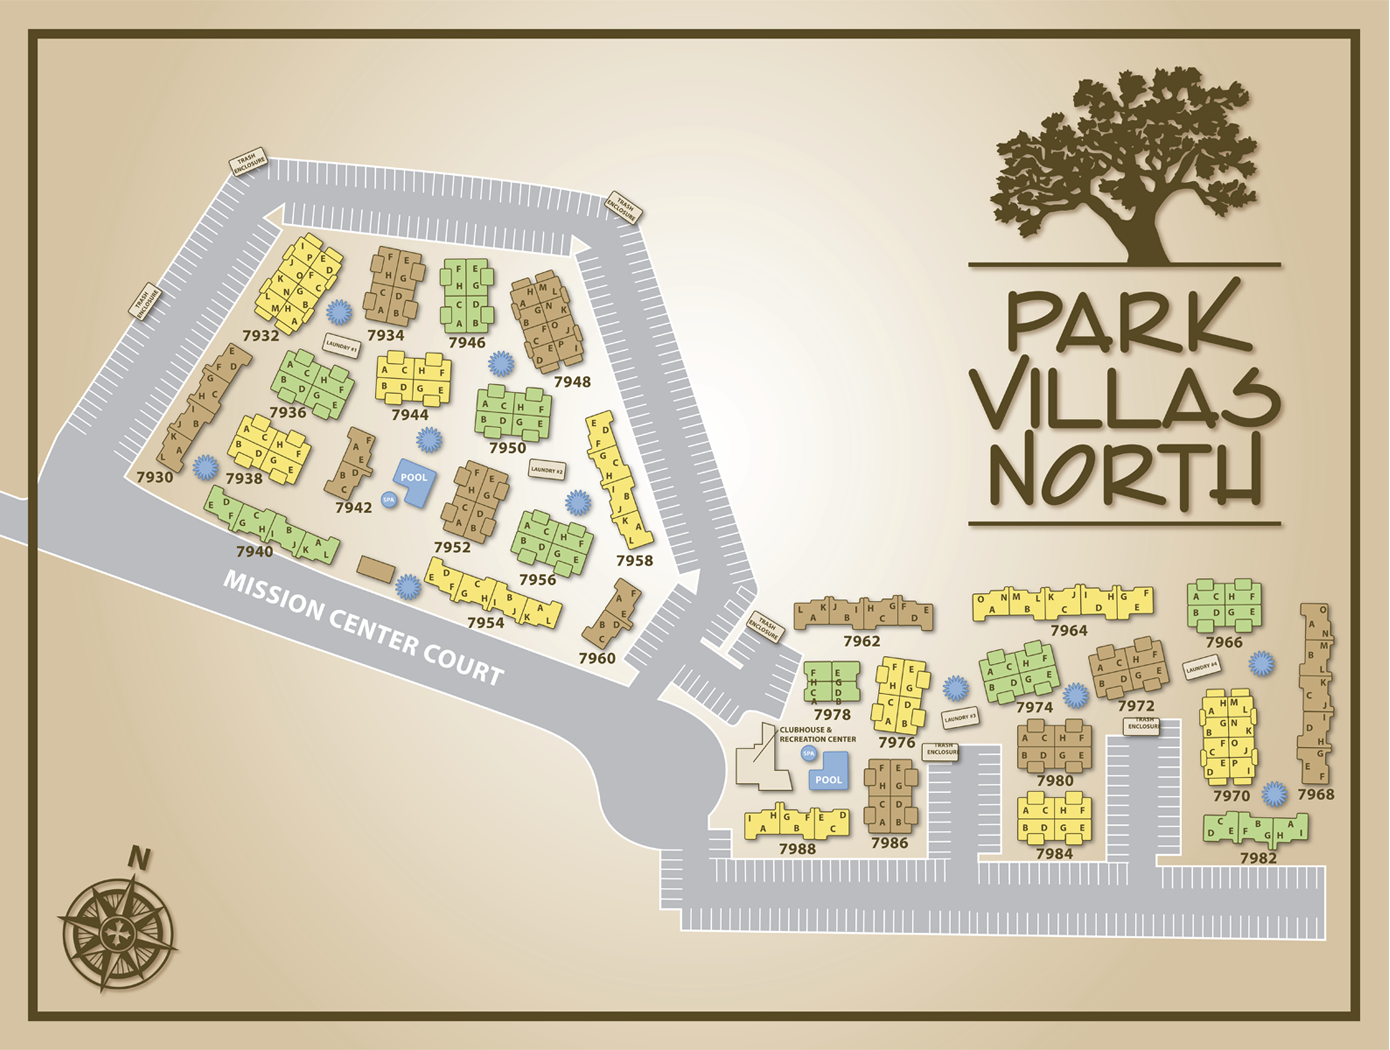 Park Villas North Map